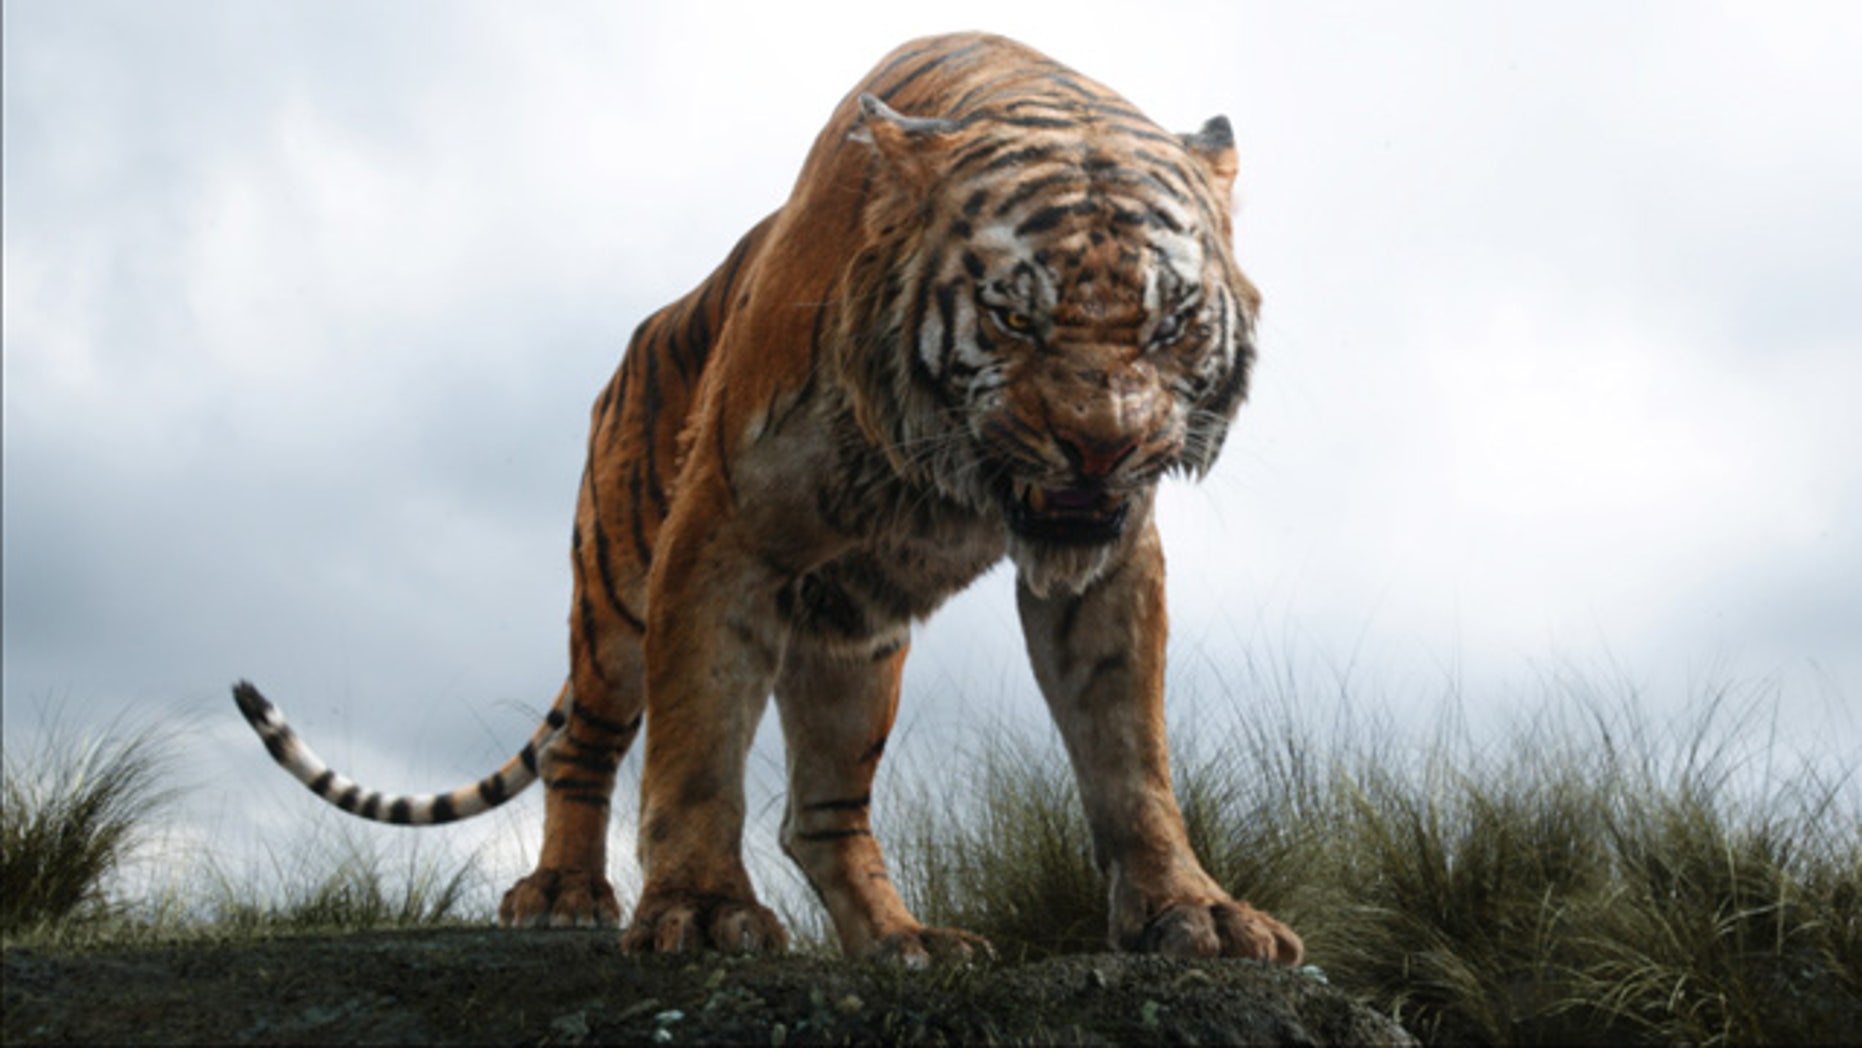 In this image released by Disney, Shere Khan the tiger, voiced by Idris Elba, appears in a scene from 'The Jungle Book.' (Disney via AP)